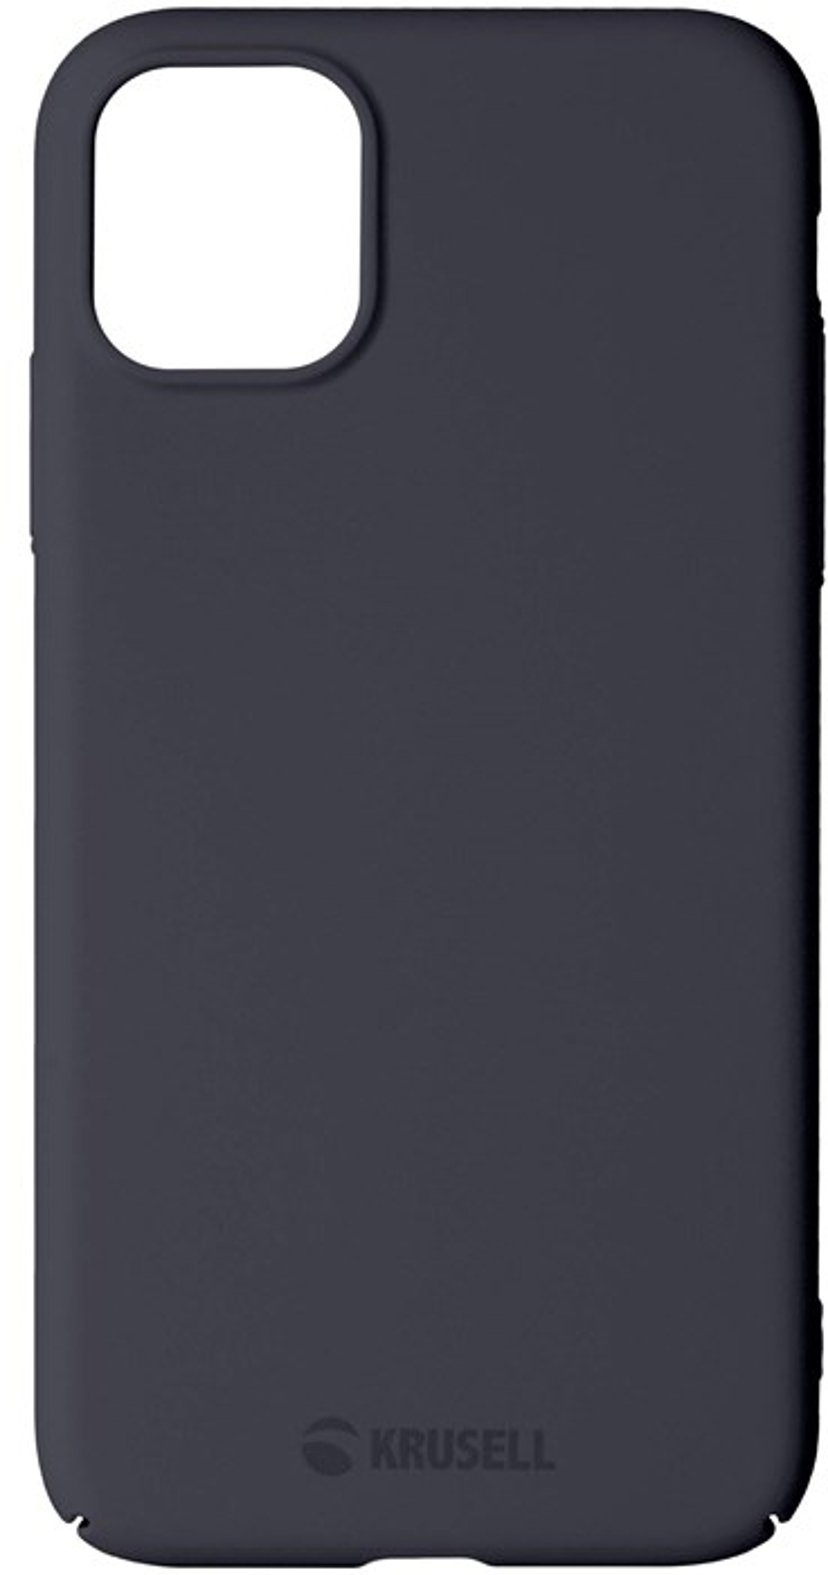 Krusell Sandby Cover iPhone 11 Pro Max Sten